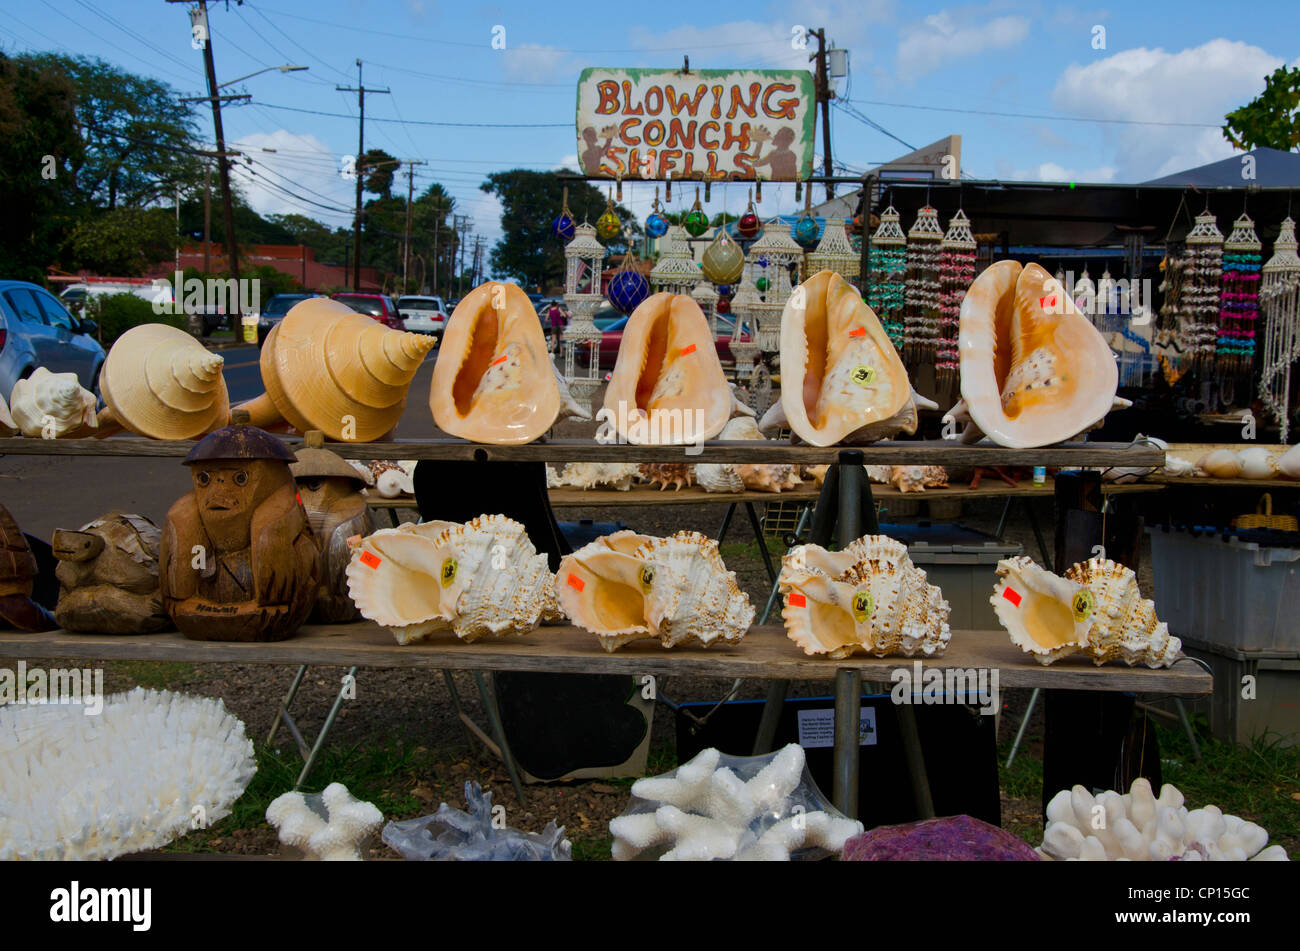 Blowing Conch Shells for sale at roadside stand at Haleiwa, Hawaii on Oahu Island - Stock Image